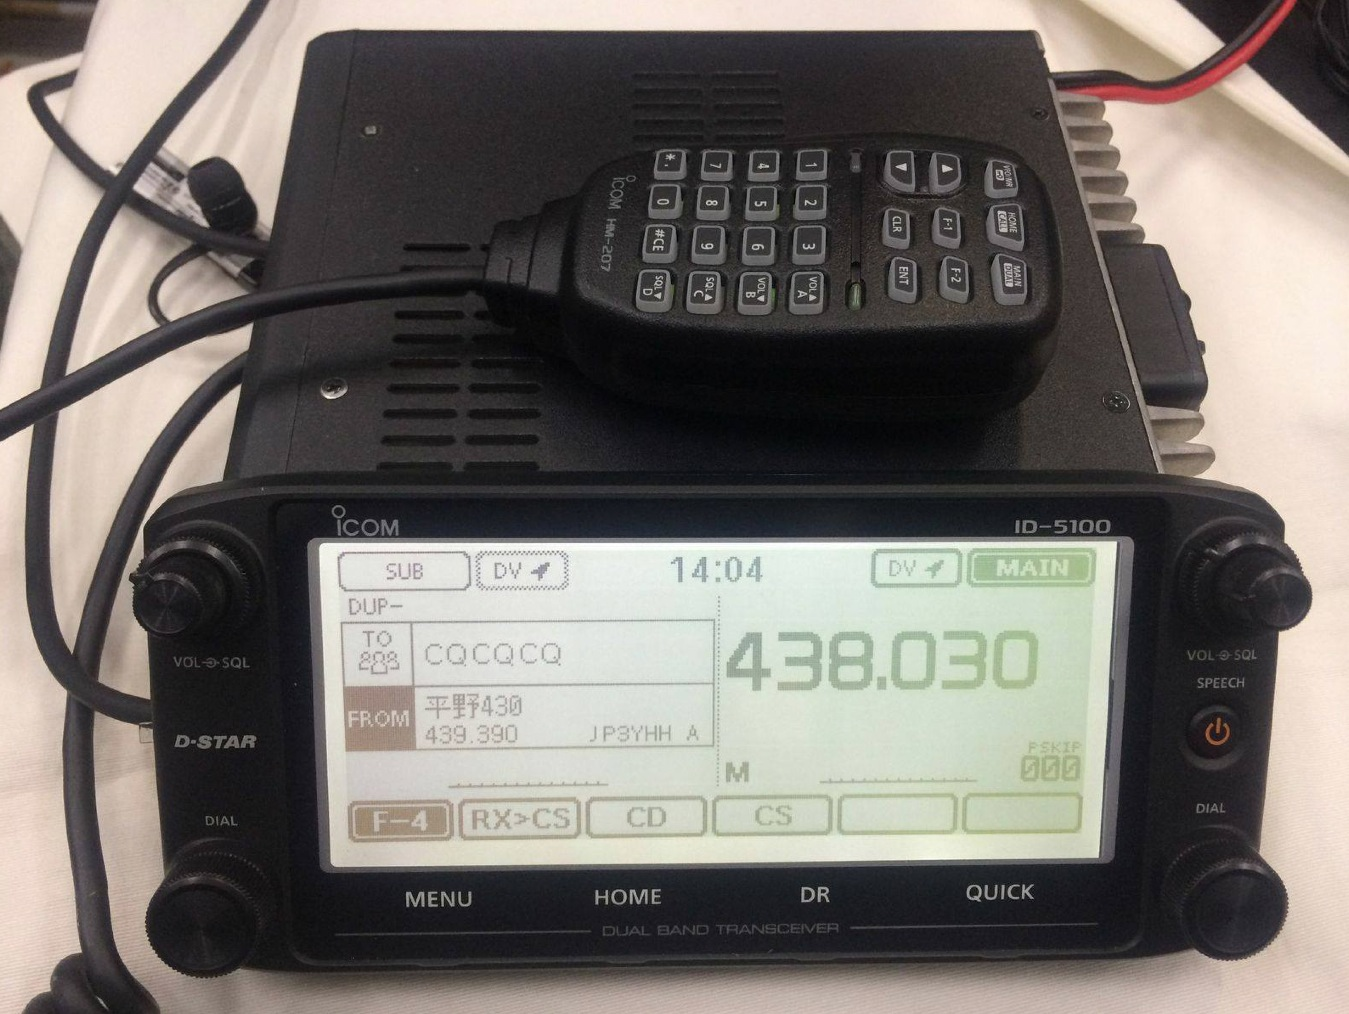 Tuned In Tokyo >> ICOM ID-5100 The next generation of mobile radio ‹ SPARKY's Blog